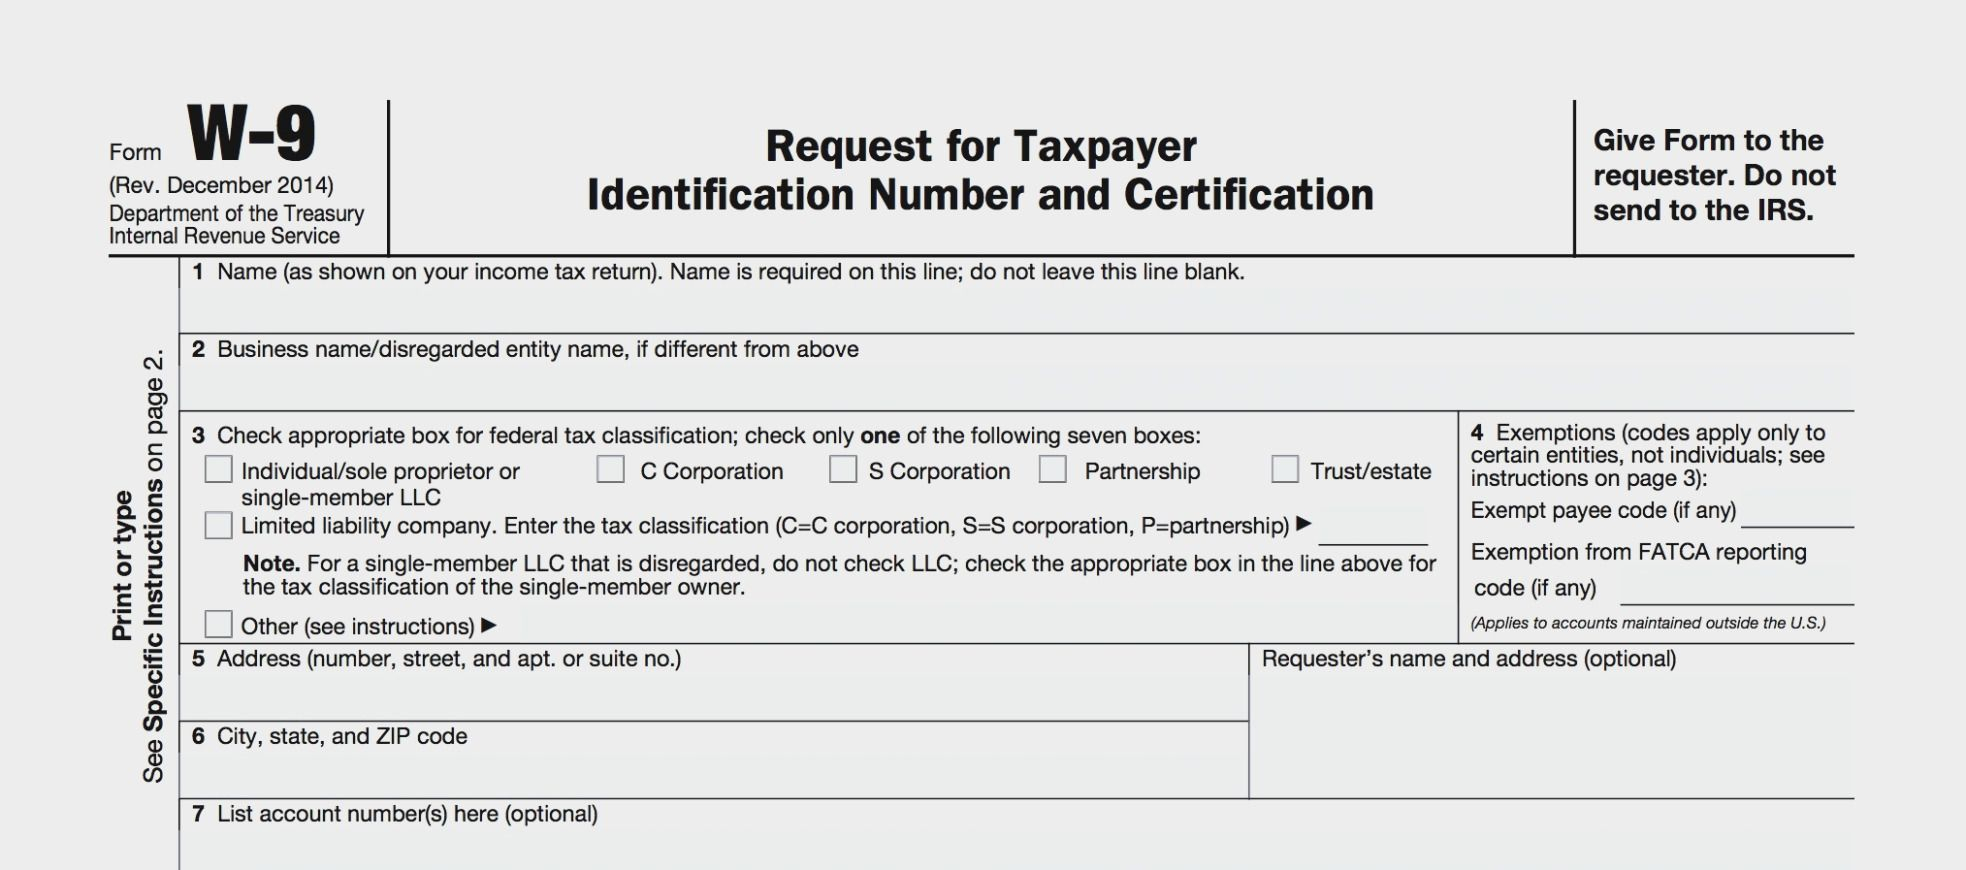 Pinmelisa Feller On Documents | A Formal Letter, Irs with regard to Blank W 9 Printable Form Template